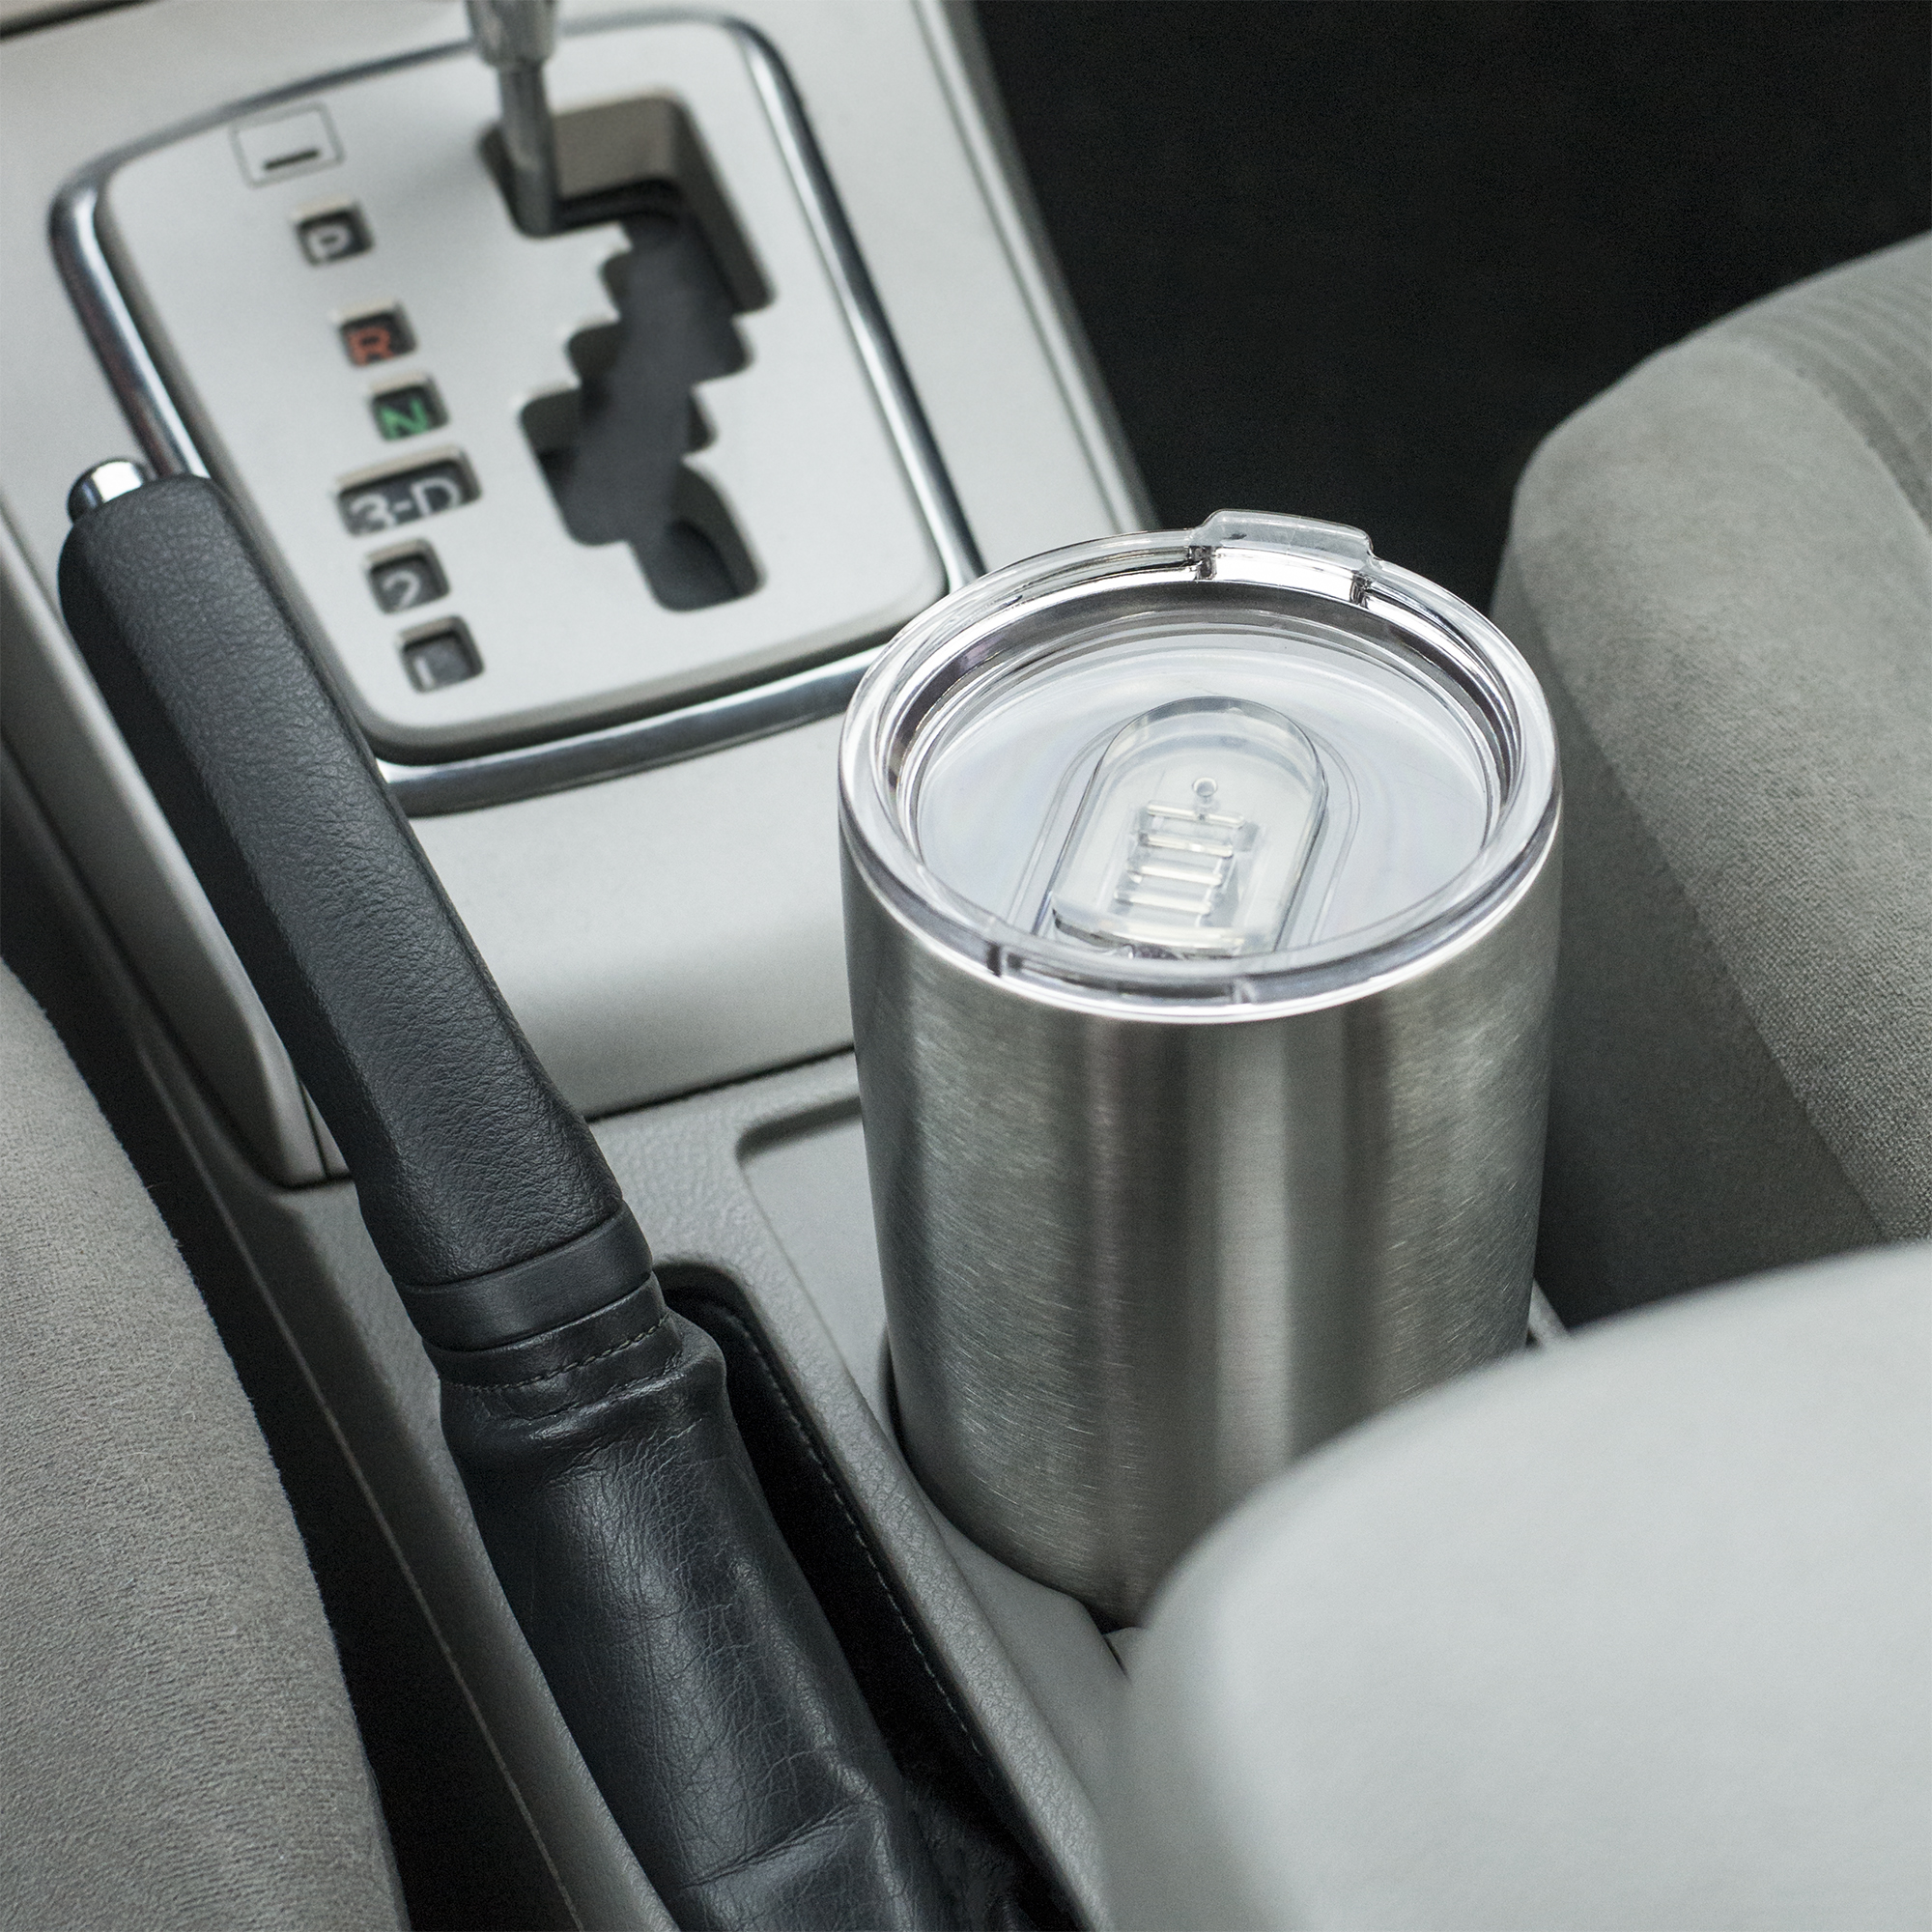 20-oz-tumbler-in-cup-holder.jpg